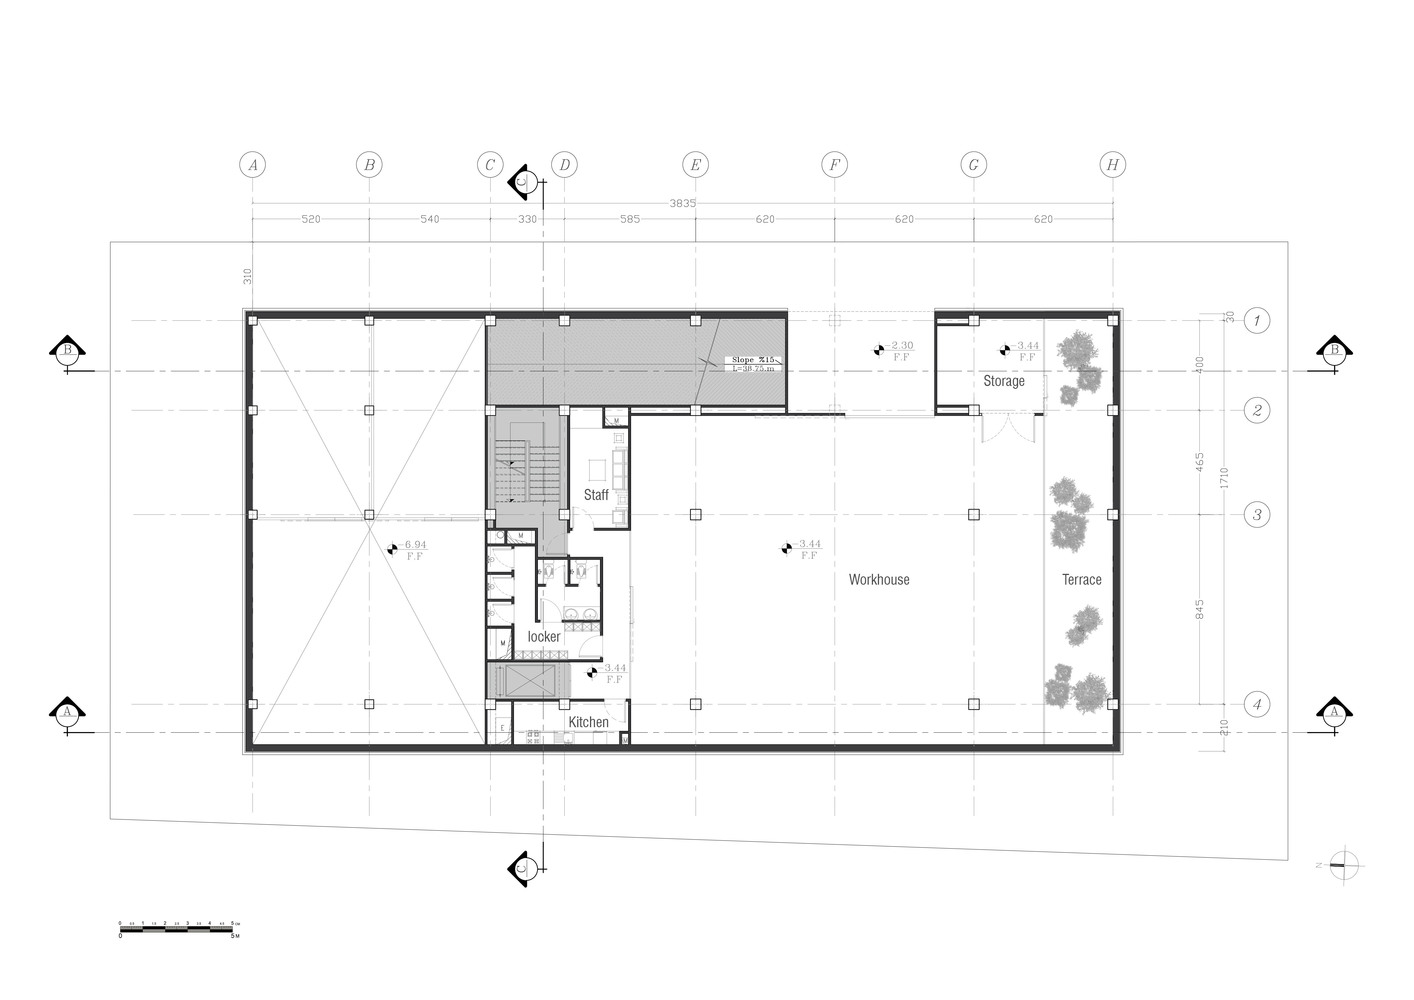 New Wave Architecture Designs Sustainable Office Building For Turbosealtech  In Iran,Basement Floor Plan